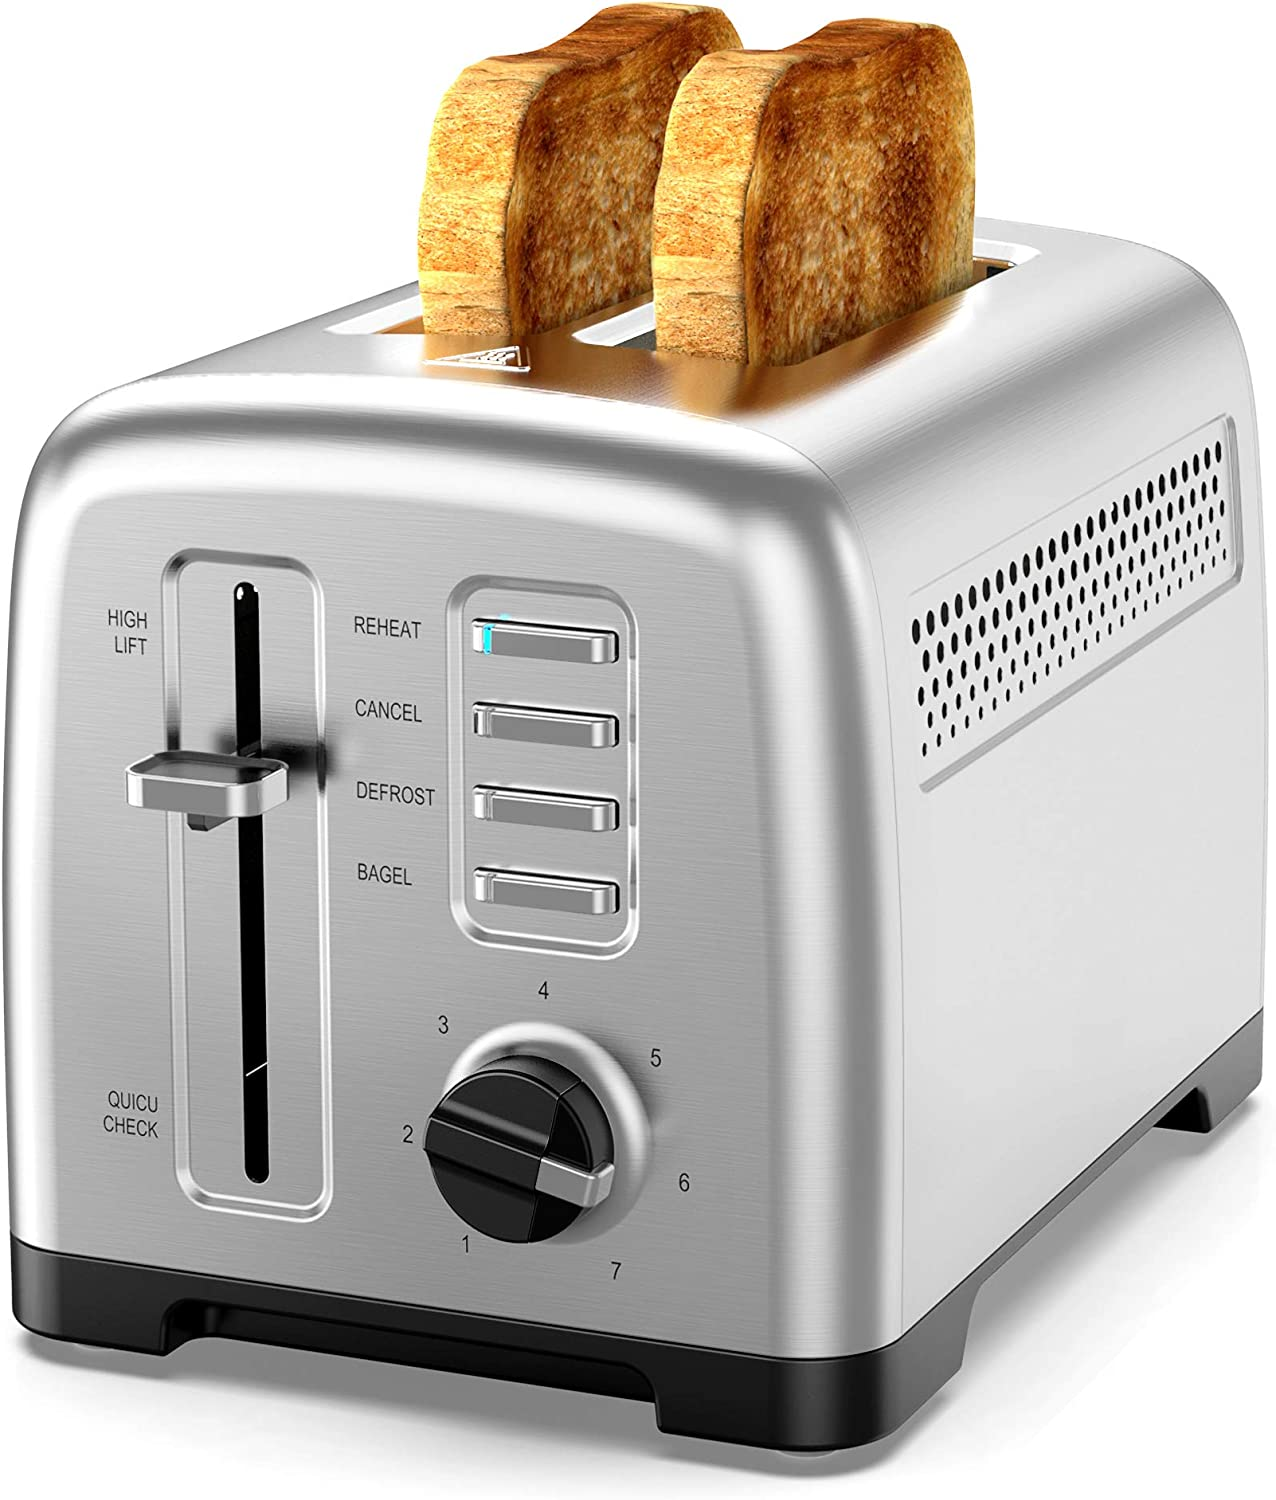 Toaster 2 Slice Stainless steel Toaster,Fast Toaster.with 7 bread Shadow Settings and Defrost/Bagel/Cancel/Heating/Quick Check Functions, Removable Bread Crumb Tray, 900W Silver